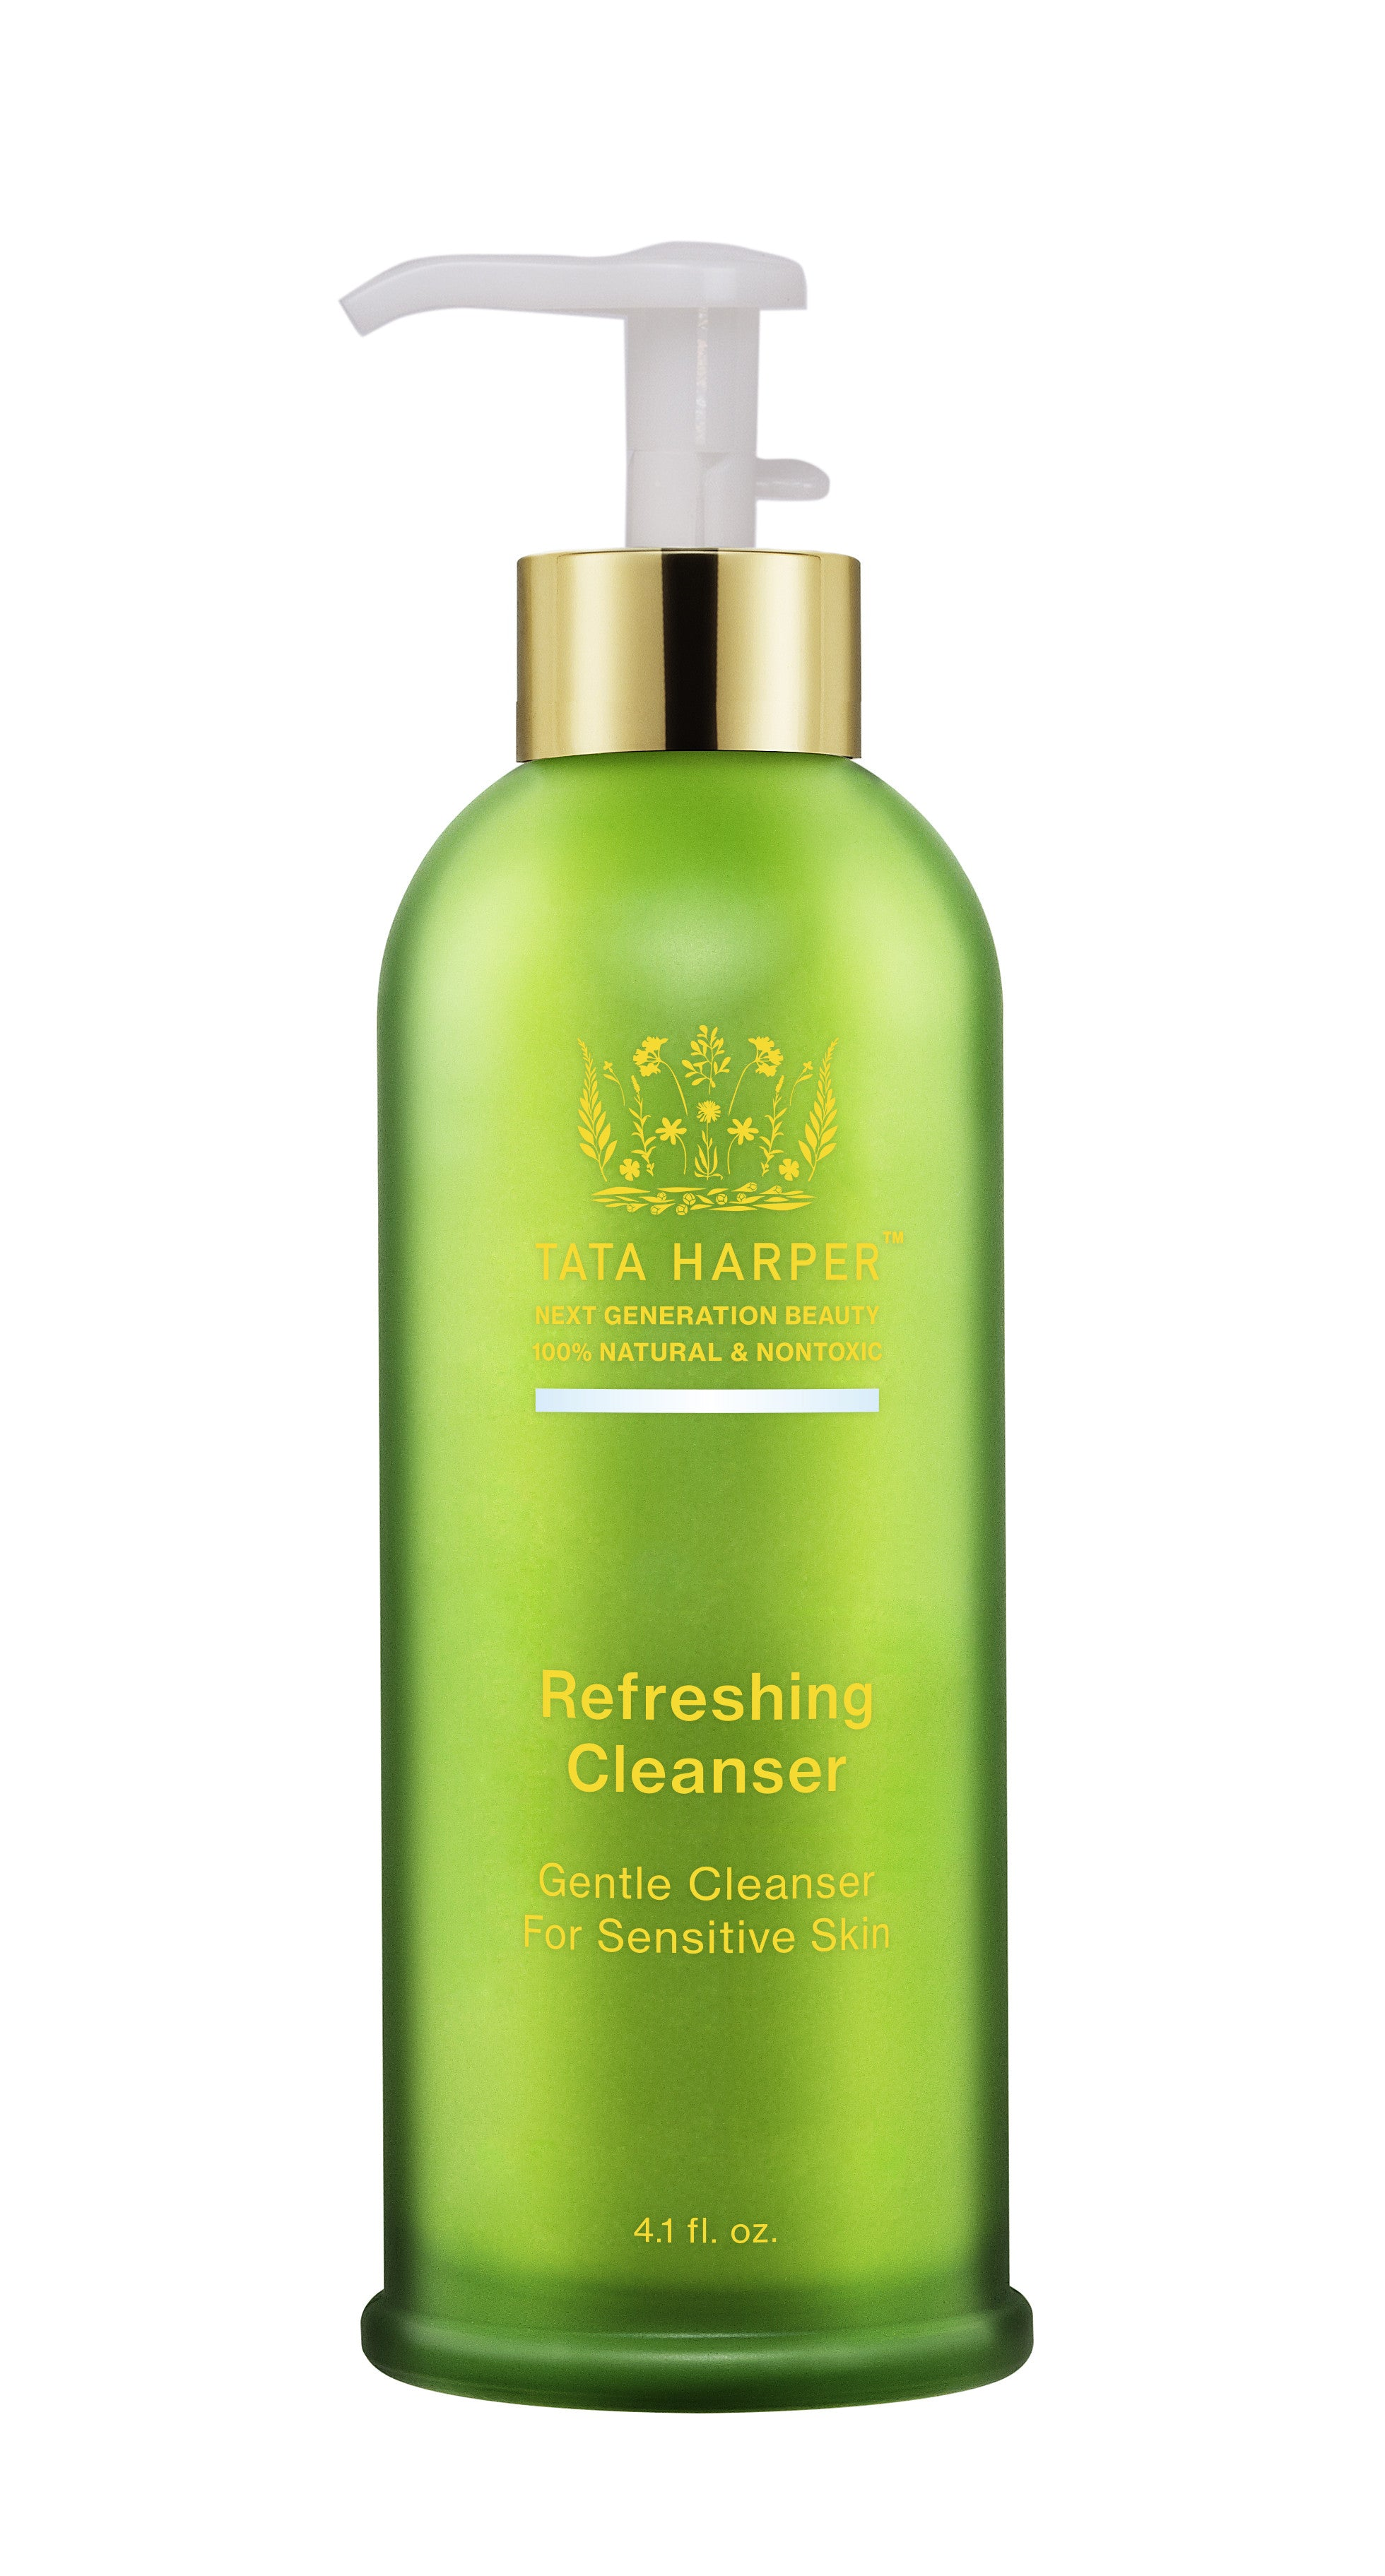 tata harper | refreshing cleanser[product_type ]tata harper - Kiss and Makeup